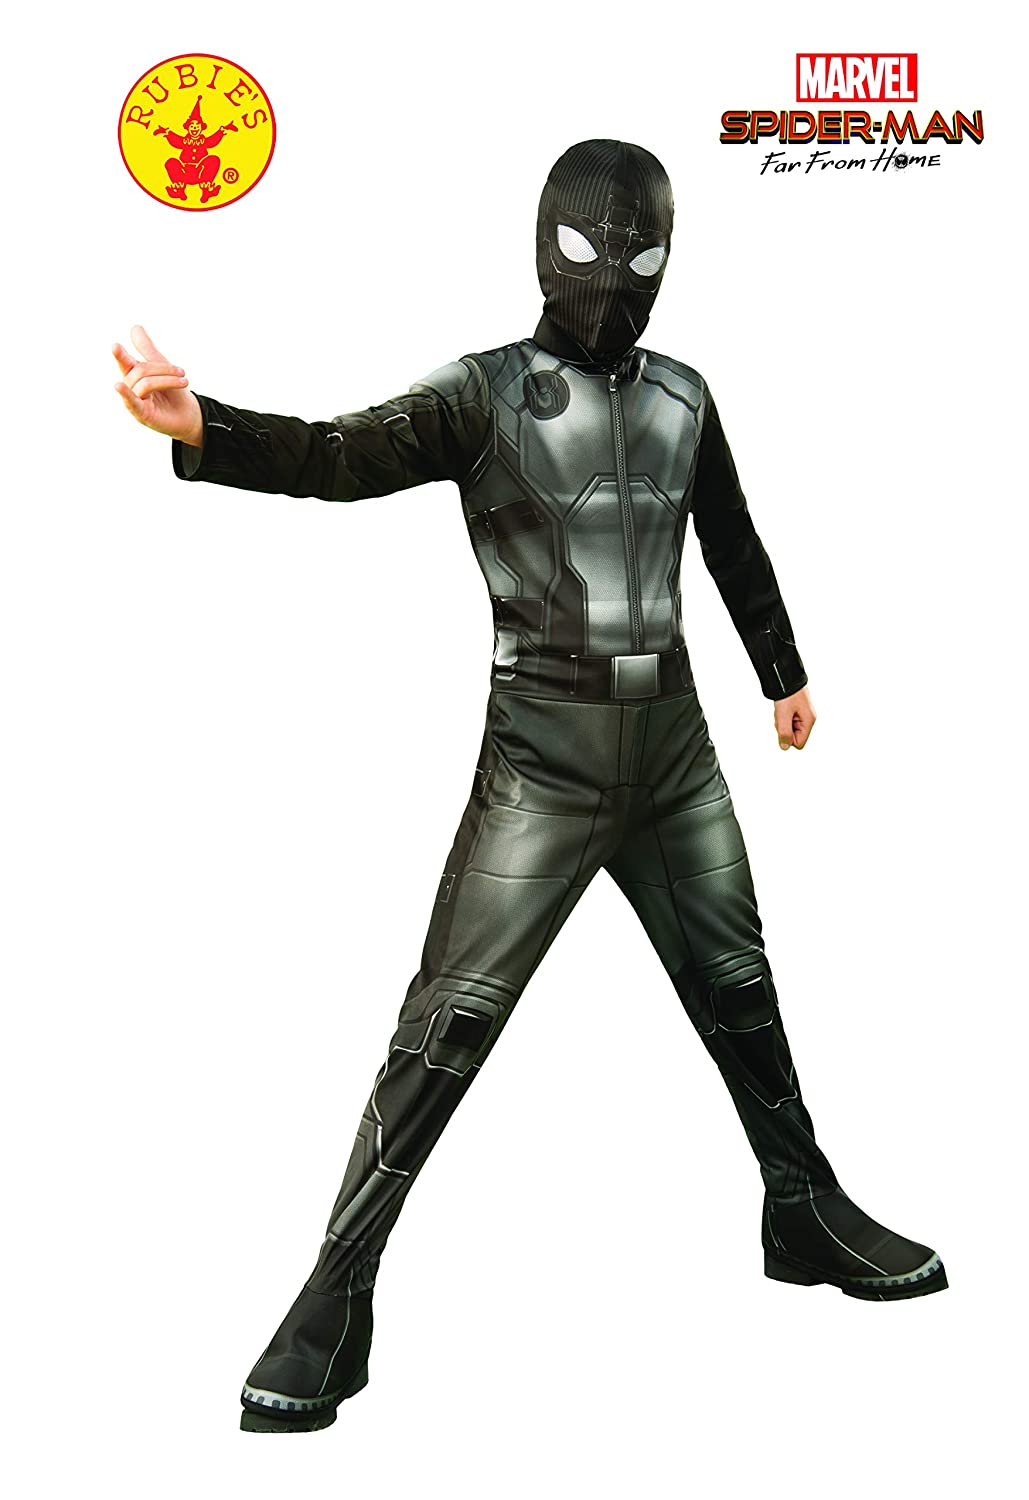 Rubies Marvel Spider-Man Far from Home Childs Spider-Man Stealth Costume & Mask, Small